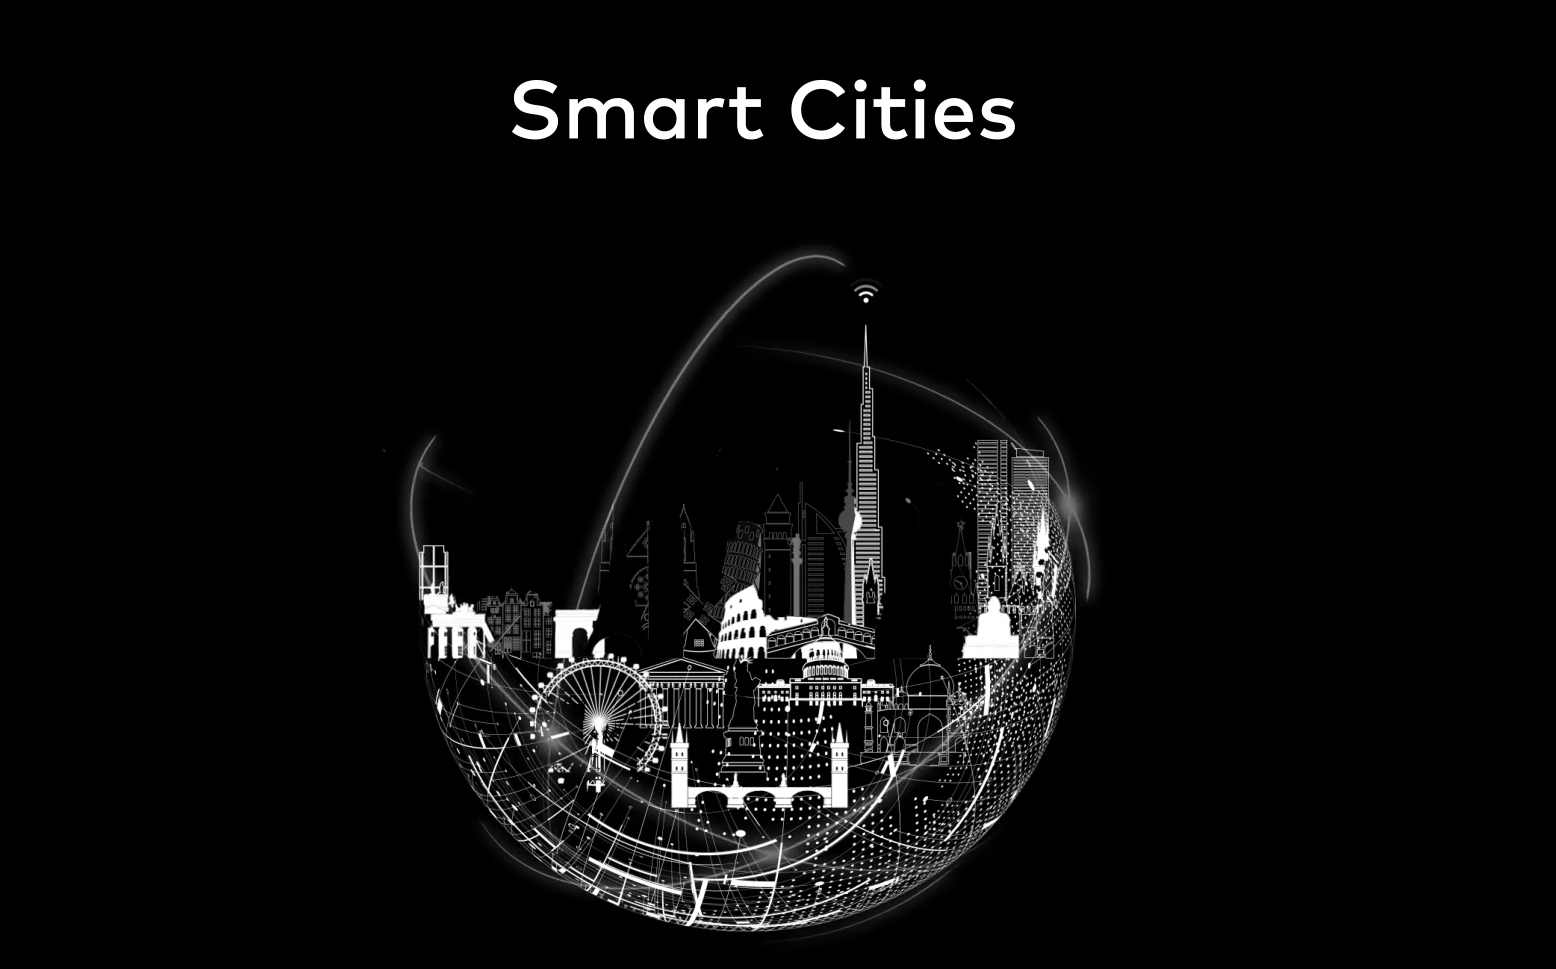 mc-smartcities01